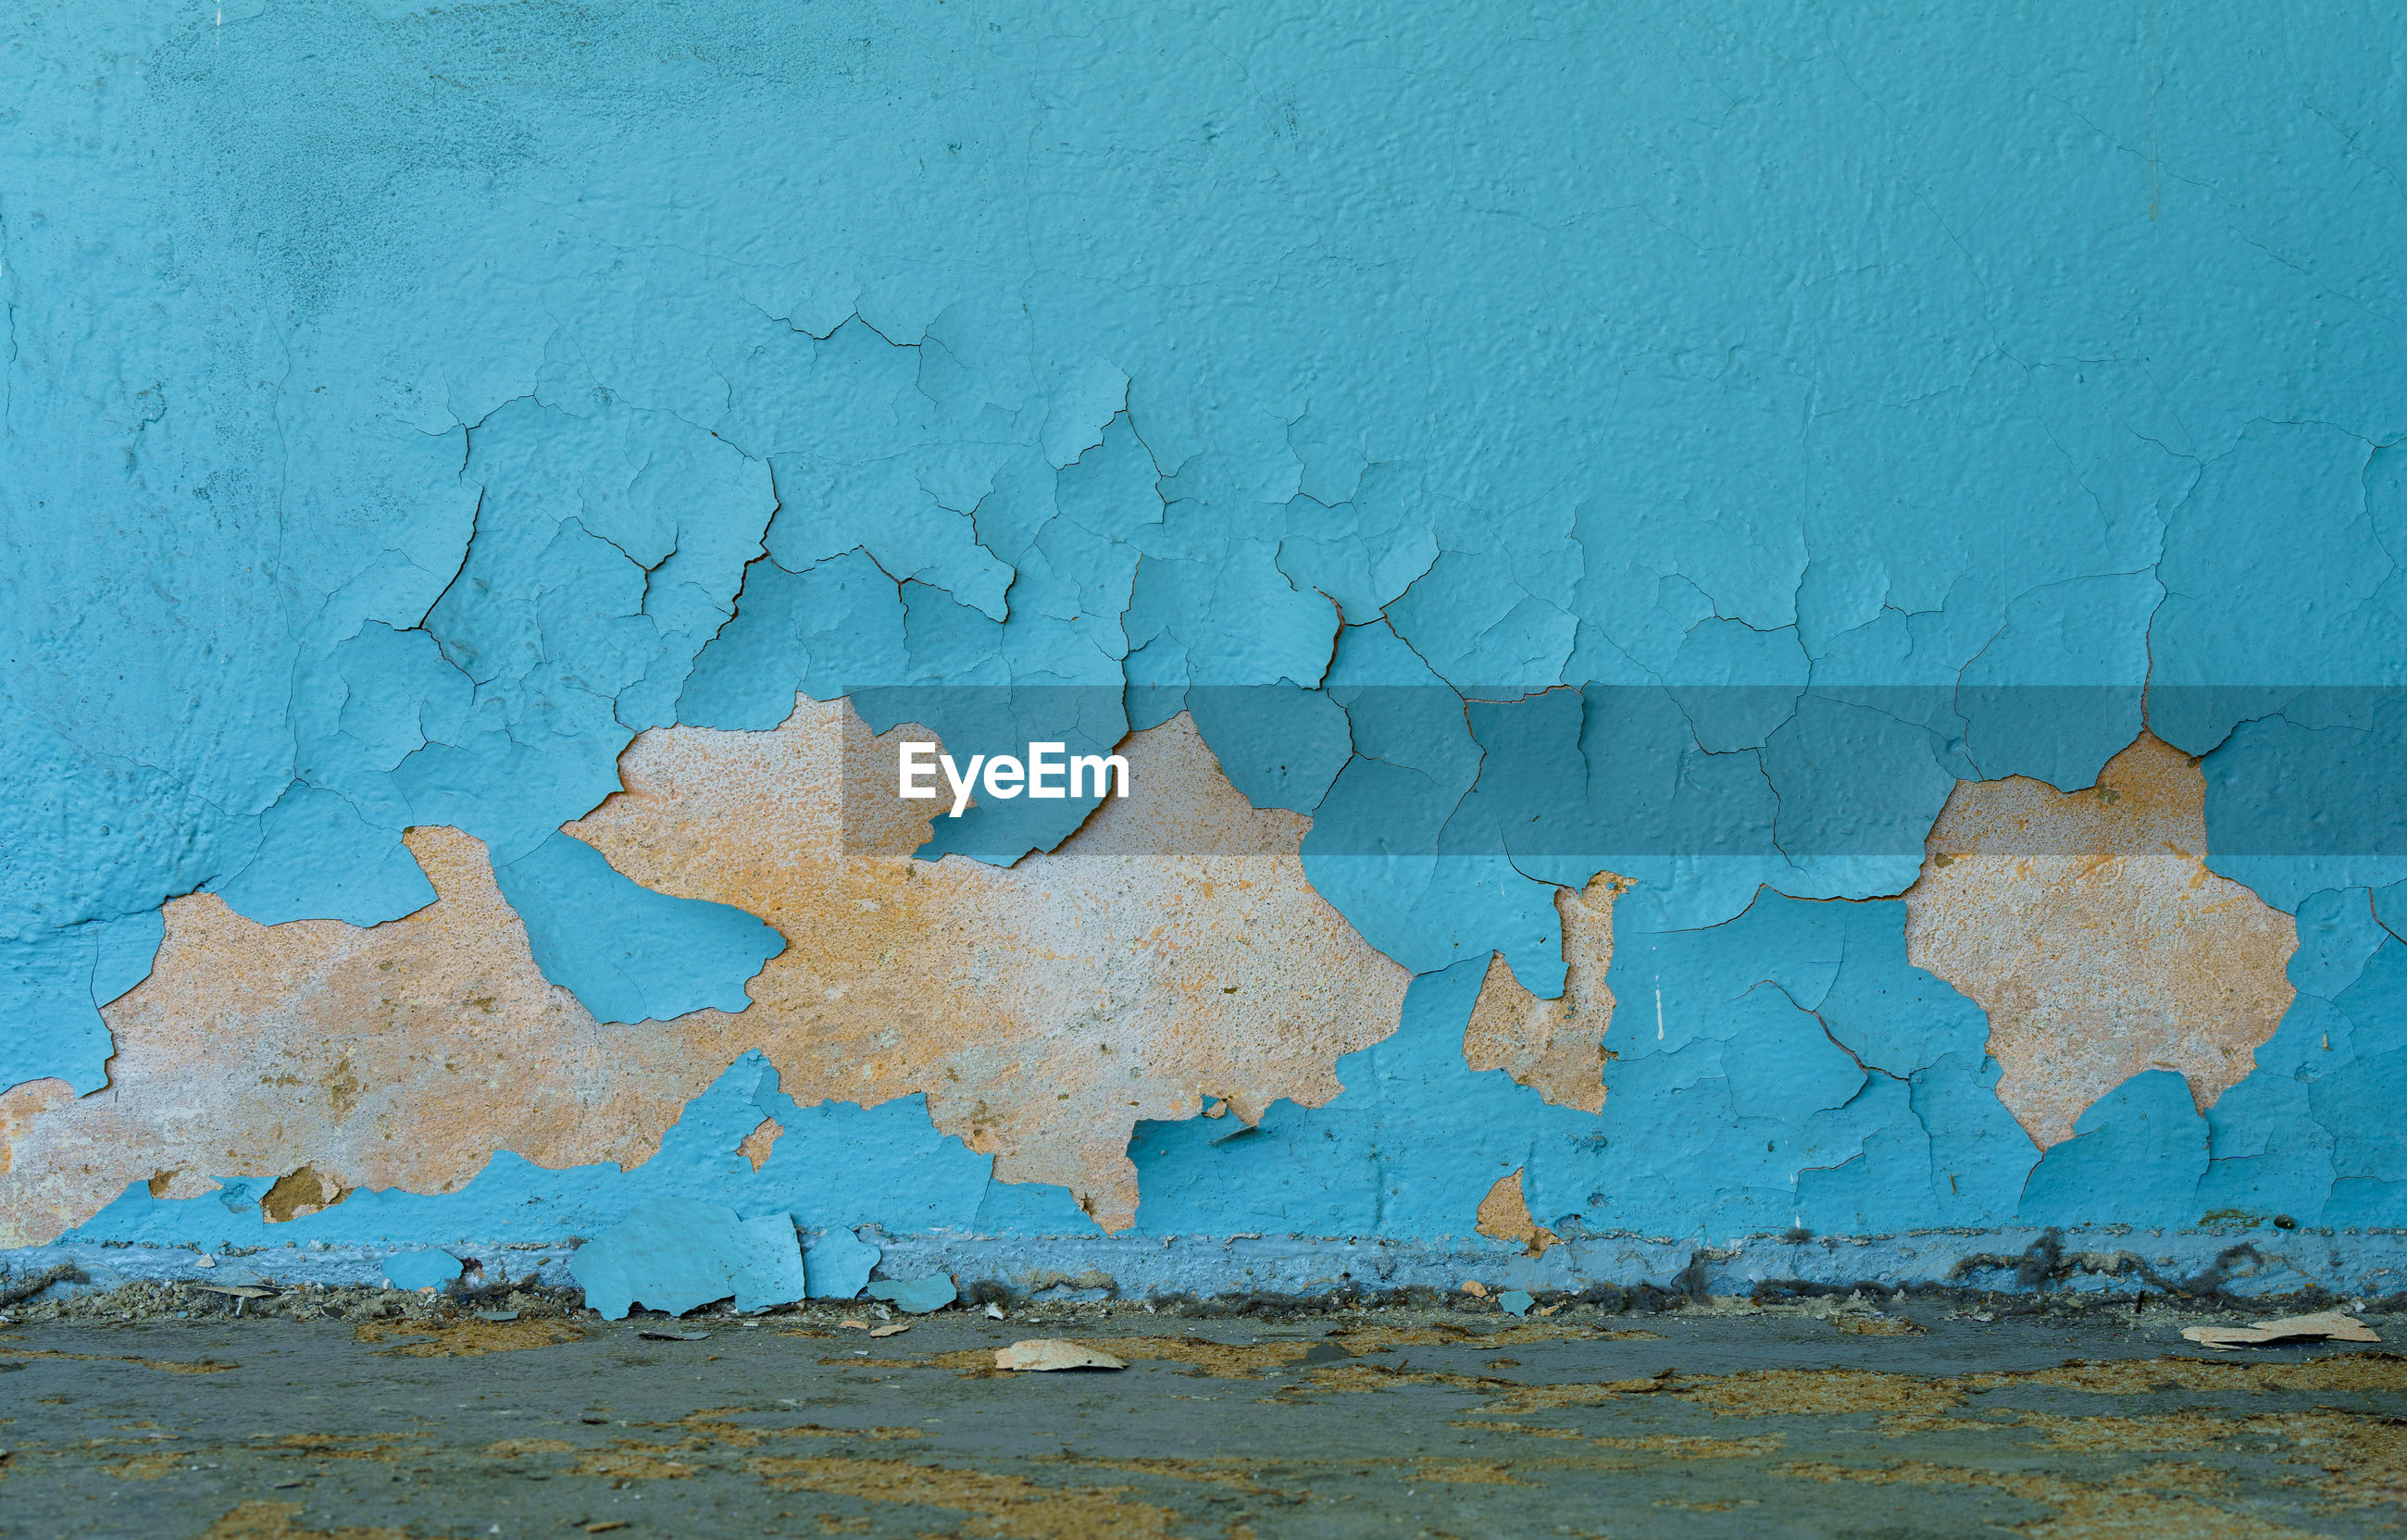 FULL FRAME SHOT OF WEATHERED WALL WITH BLUE PAINT